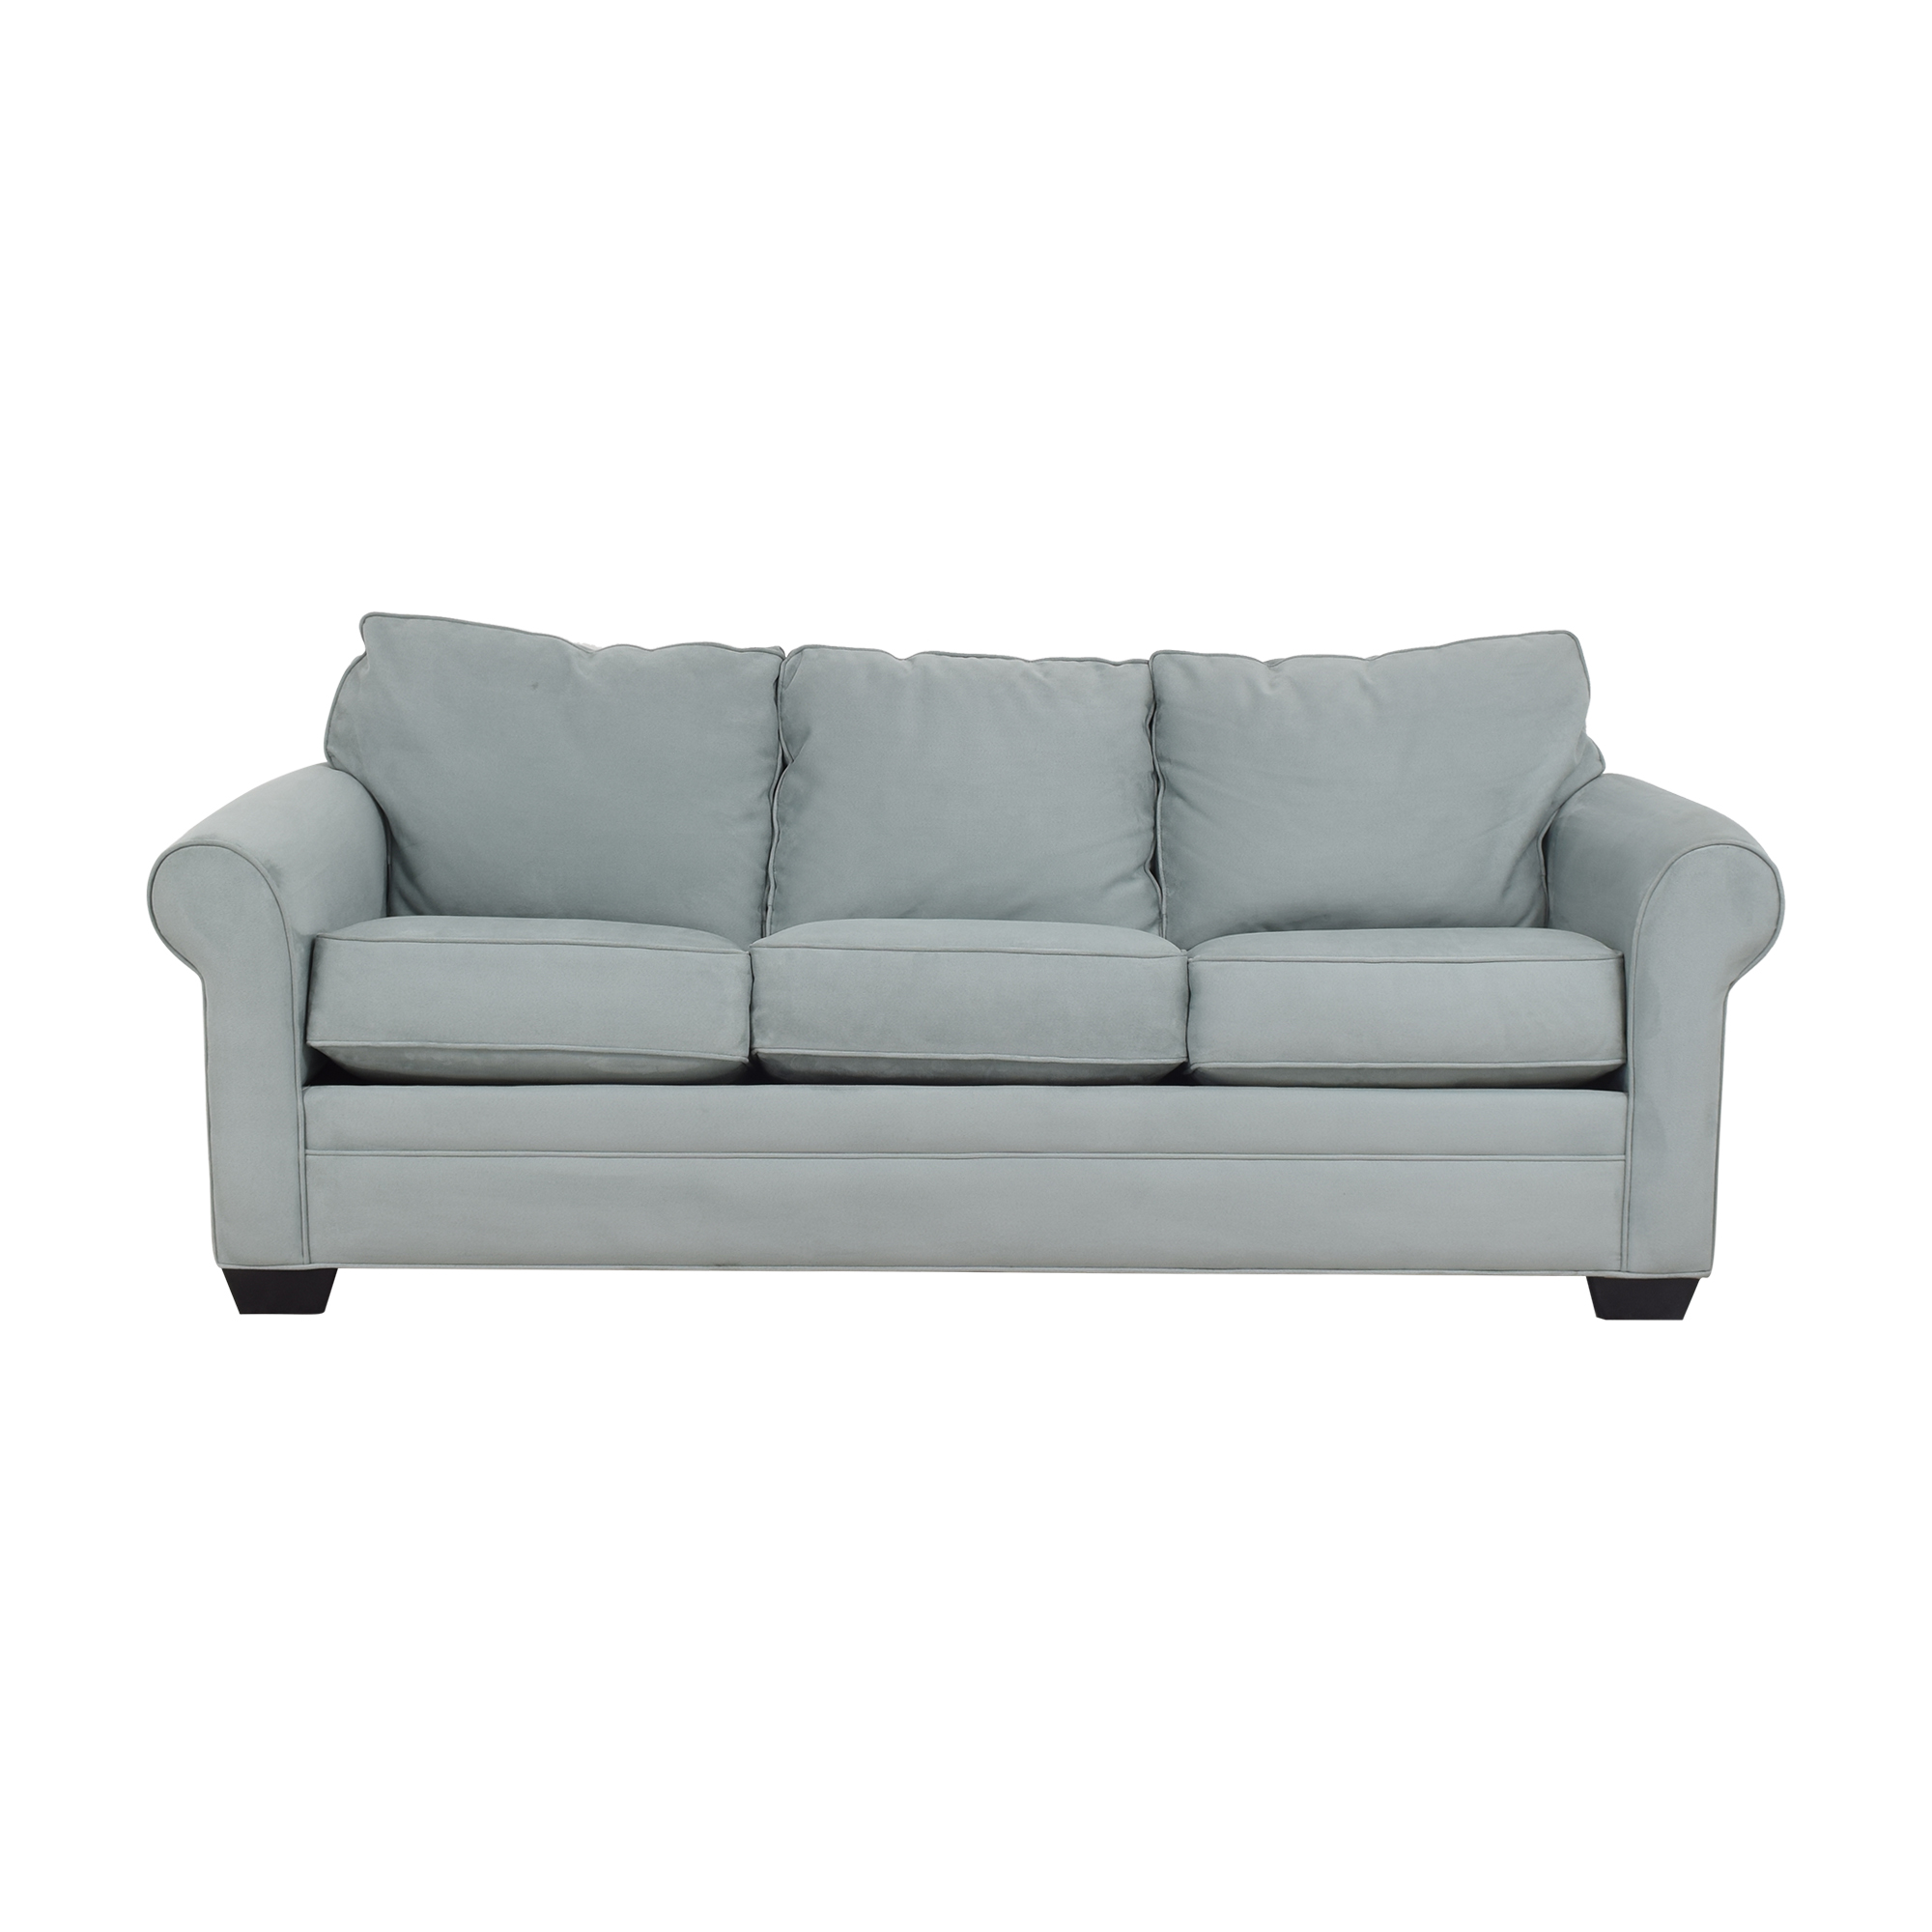 Cindy Crawford Home Cindy Crawford Home Bellingham Hydra Sleeper Sofa blue